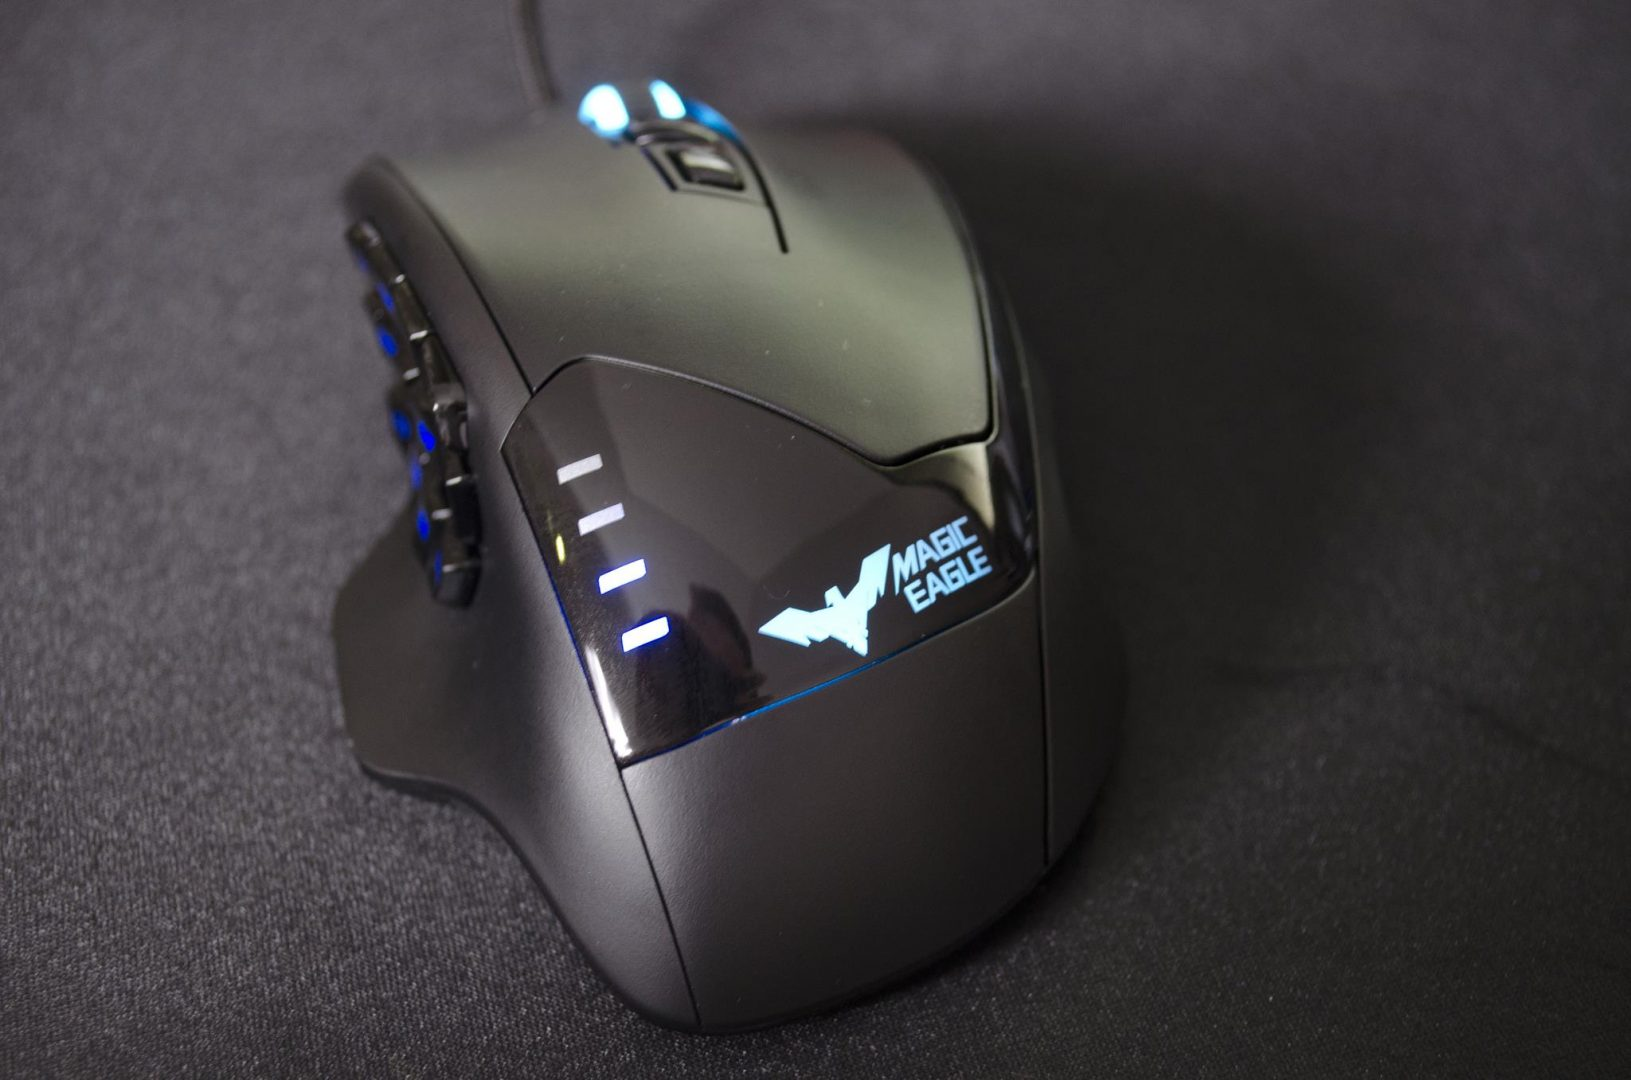 havit-hv-ms735-mouse-review_10